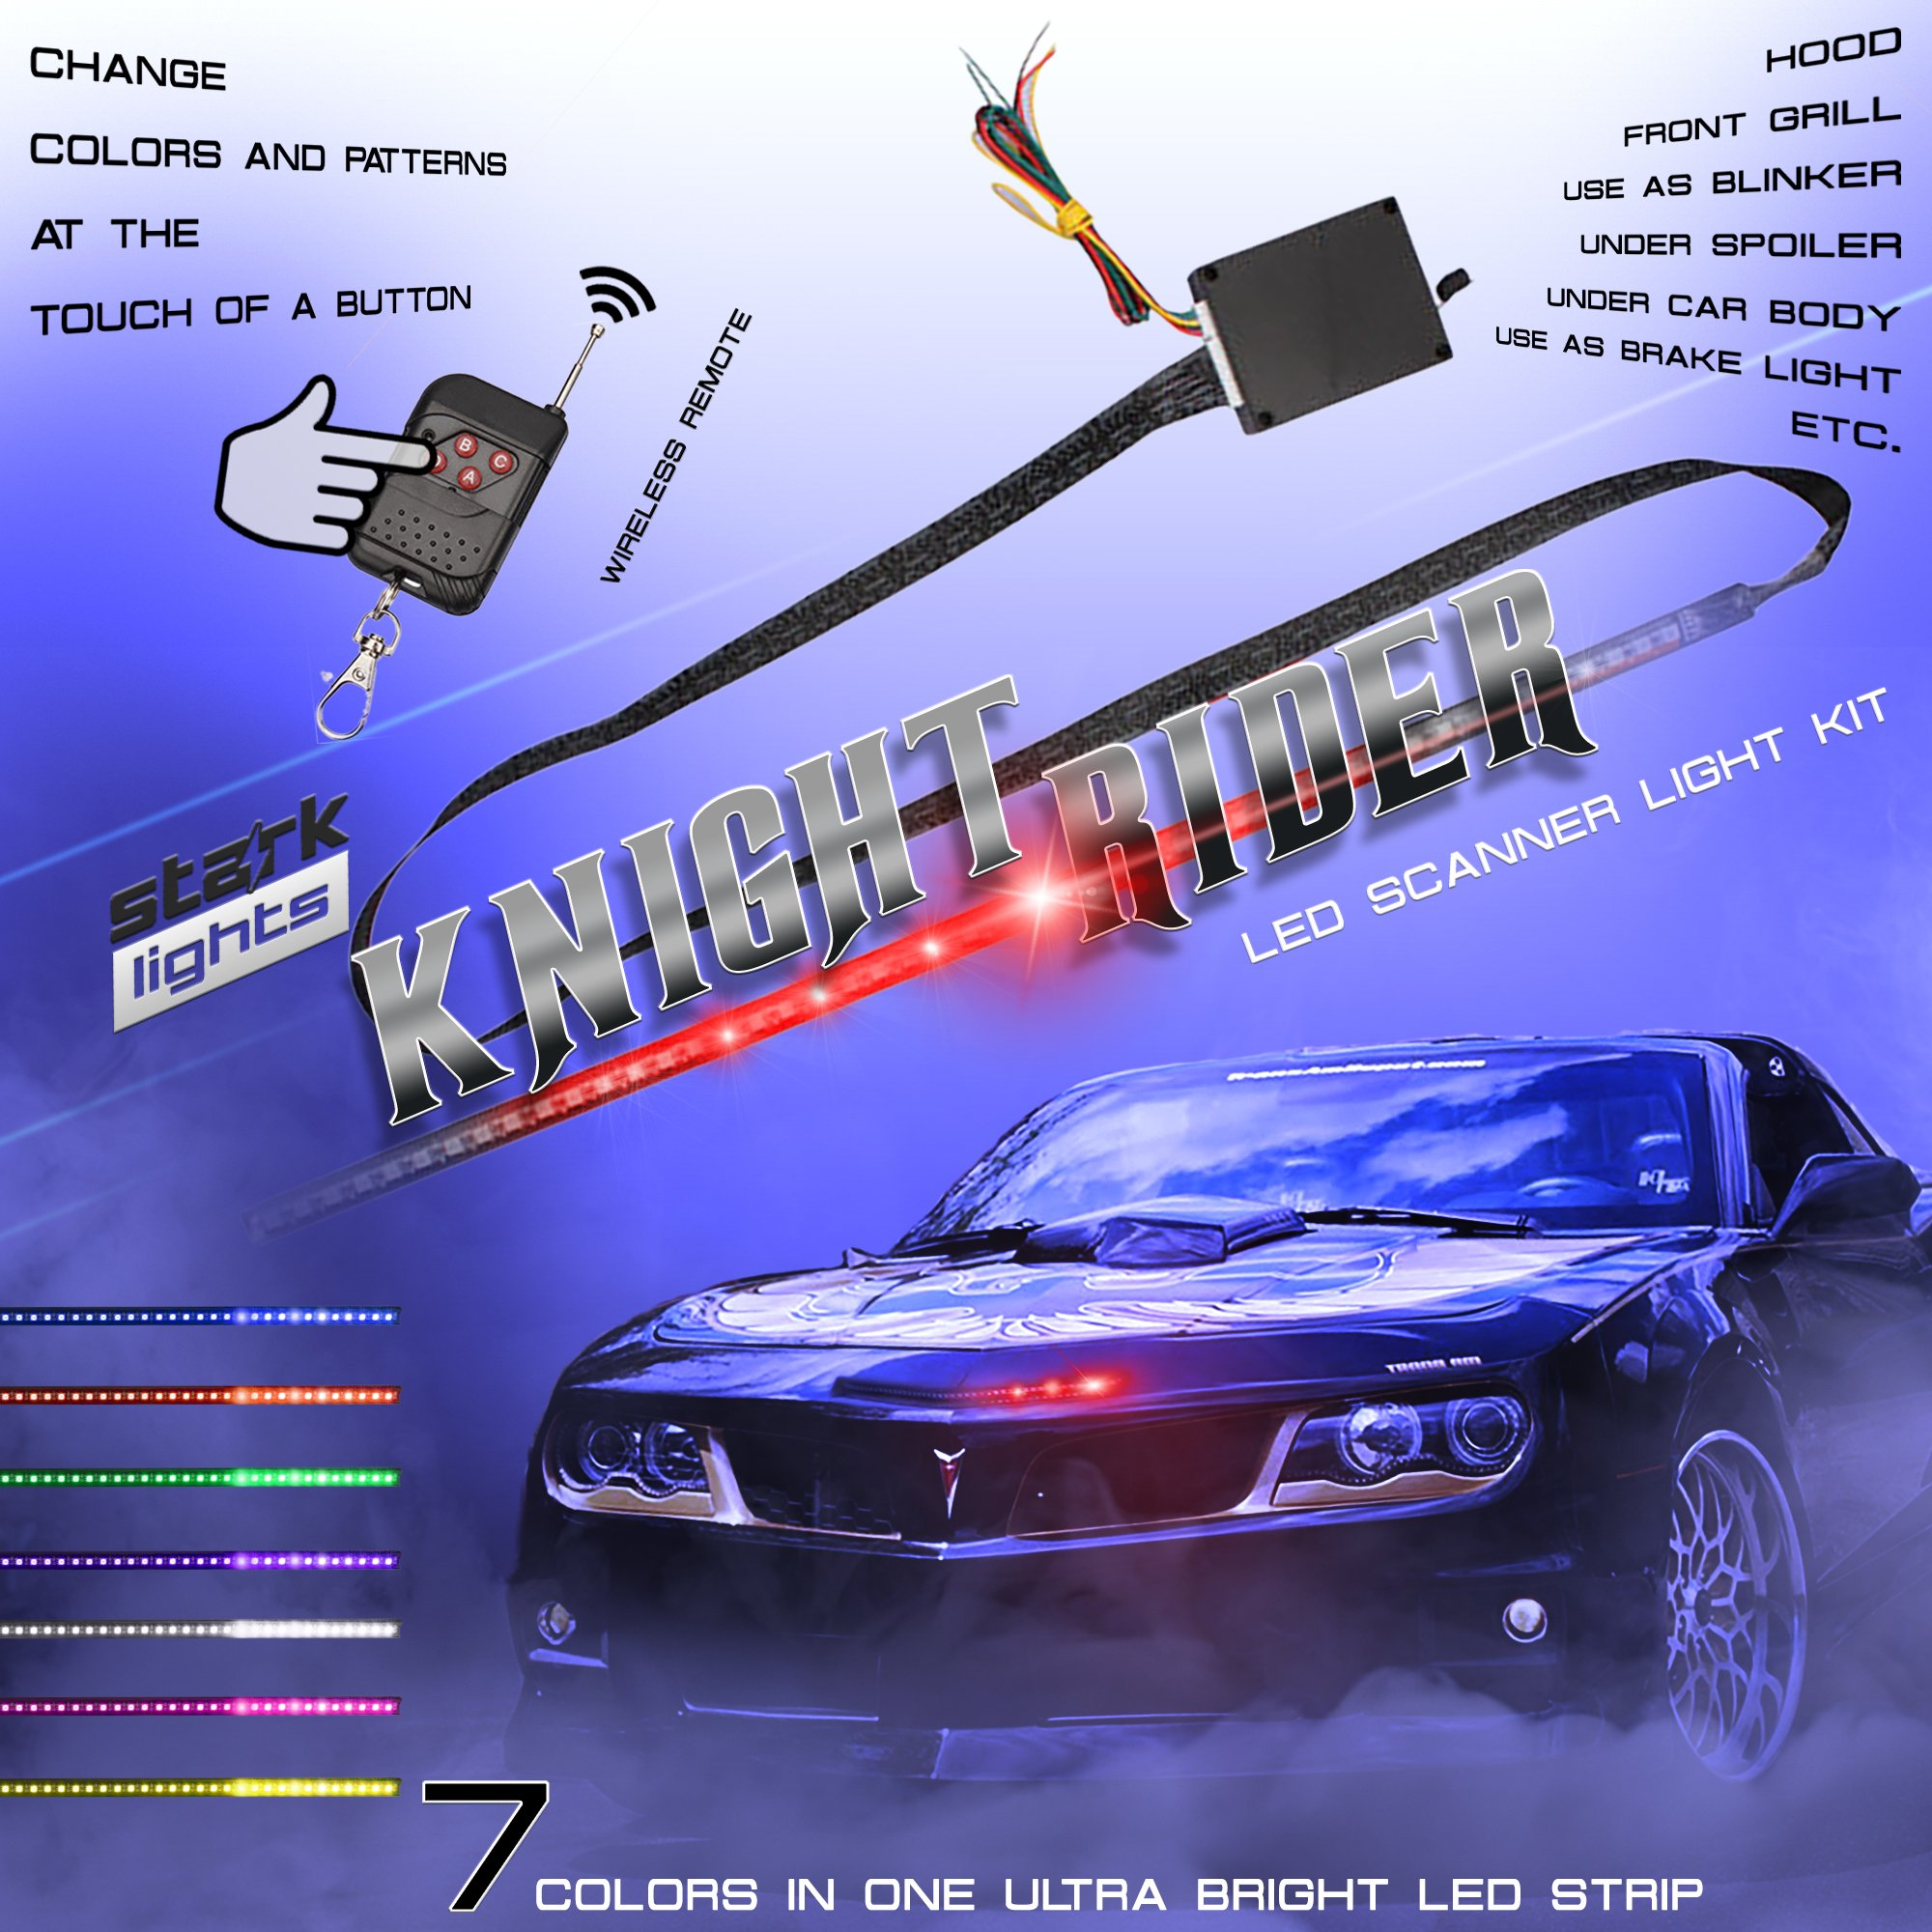 48 LED RGB Knight Rider Scanner DRL Multi Color Flash Car Strobe 7 Color Universal Light Kit Strip 22 Inch by Stark